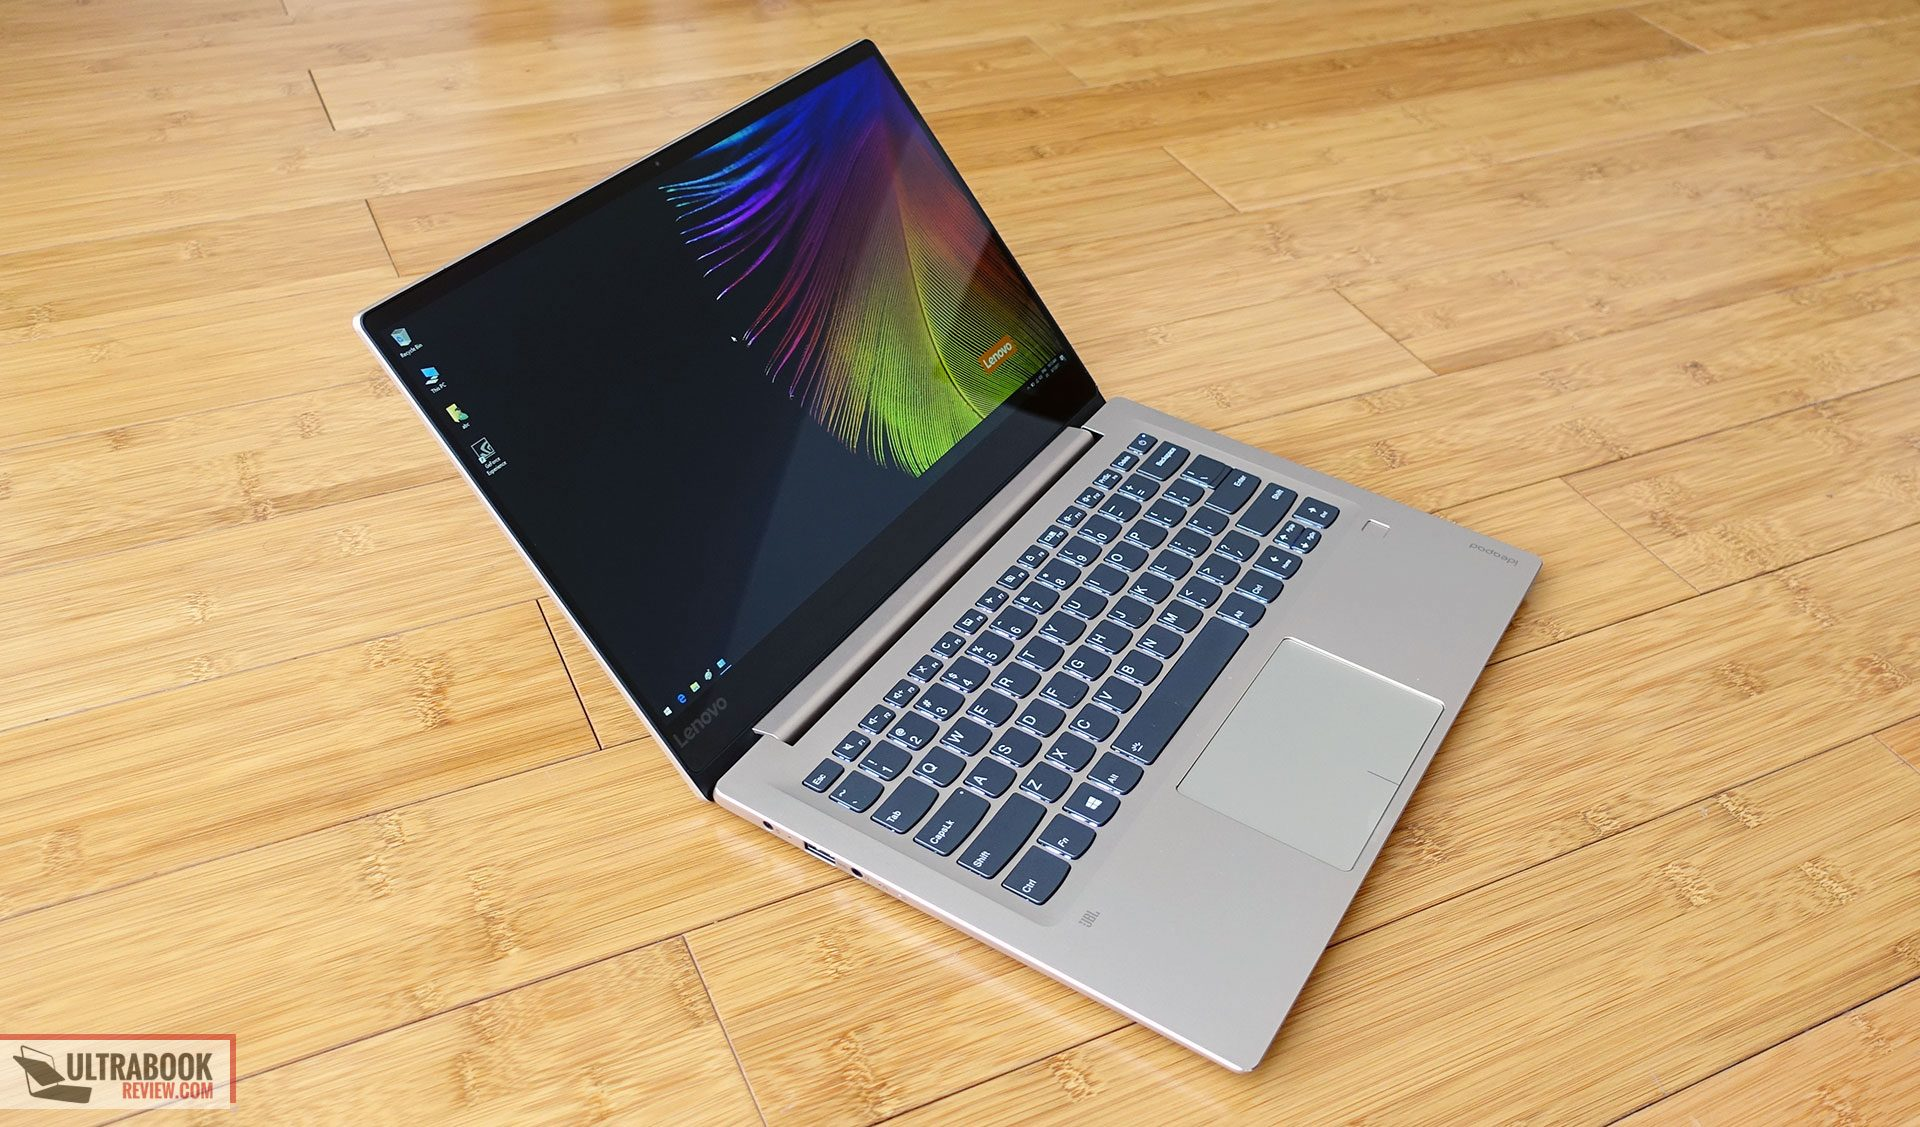 Lenovo IdeaPad 720s review - a solid all-round thin-and